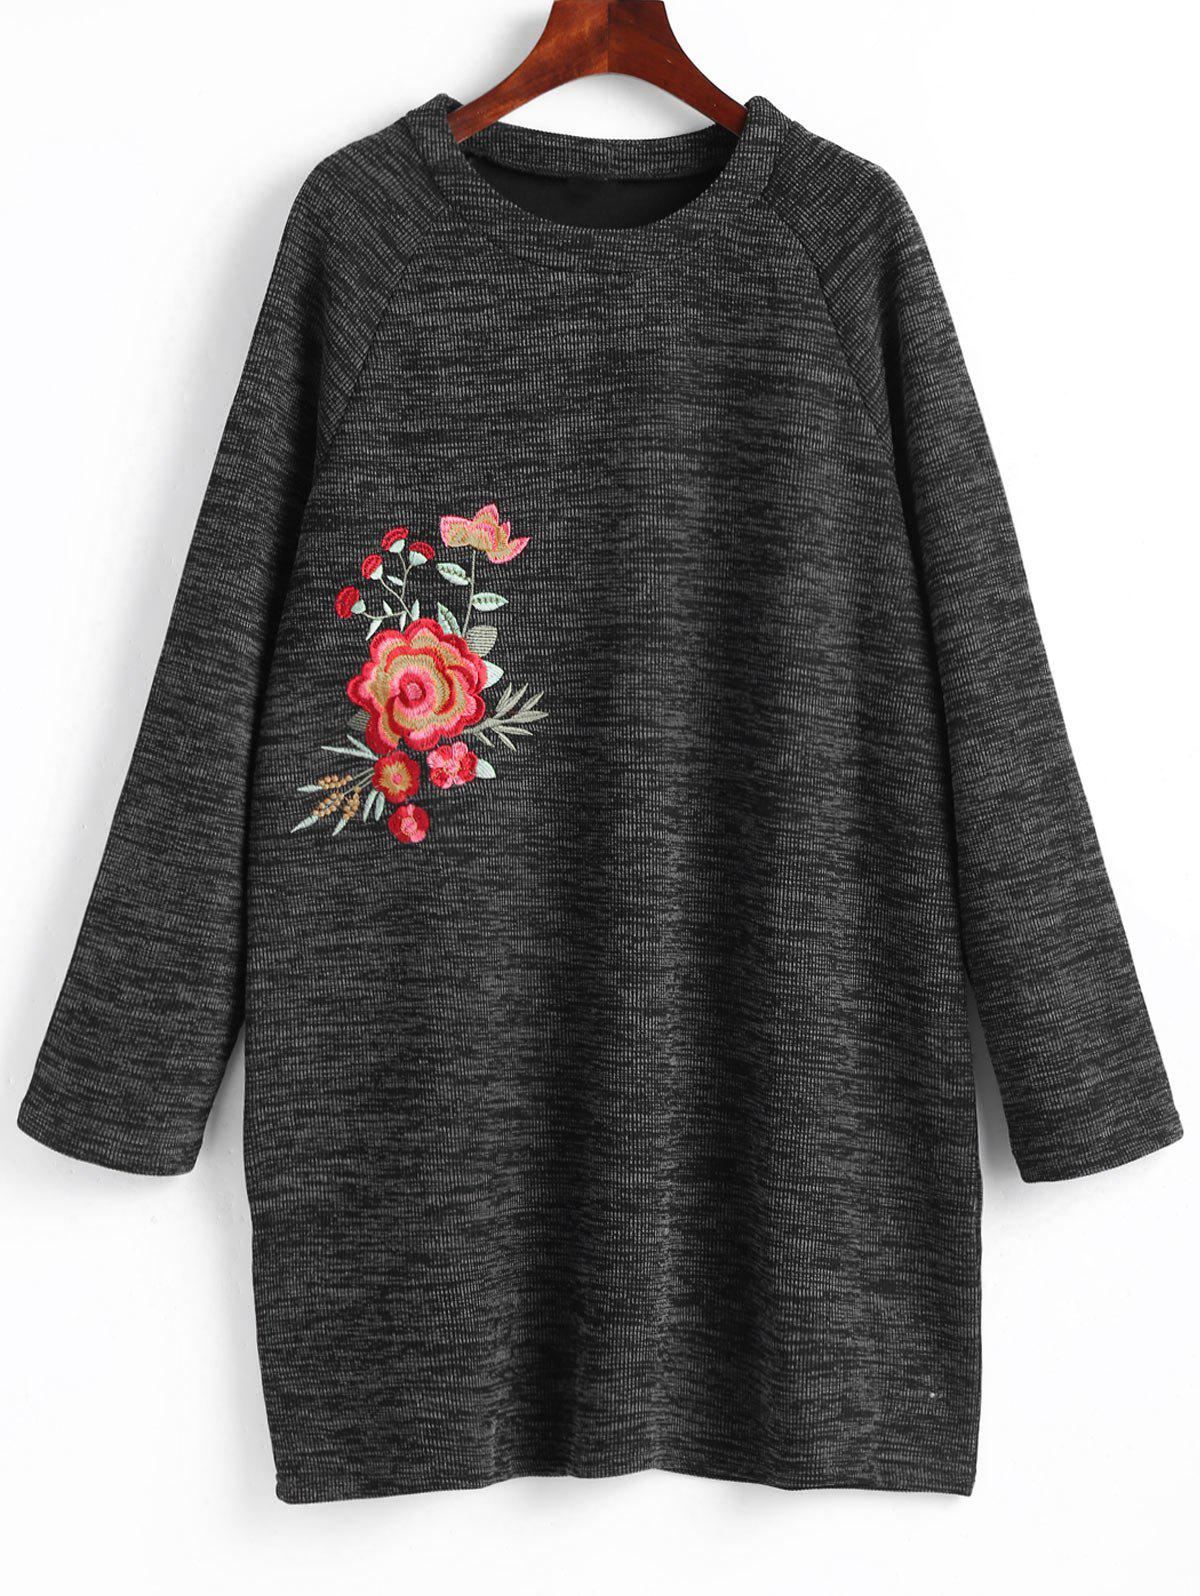 Plus Size Floral Embroidered Mini Sweatshirt Dress - DEEP GRAY 3XL